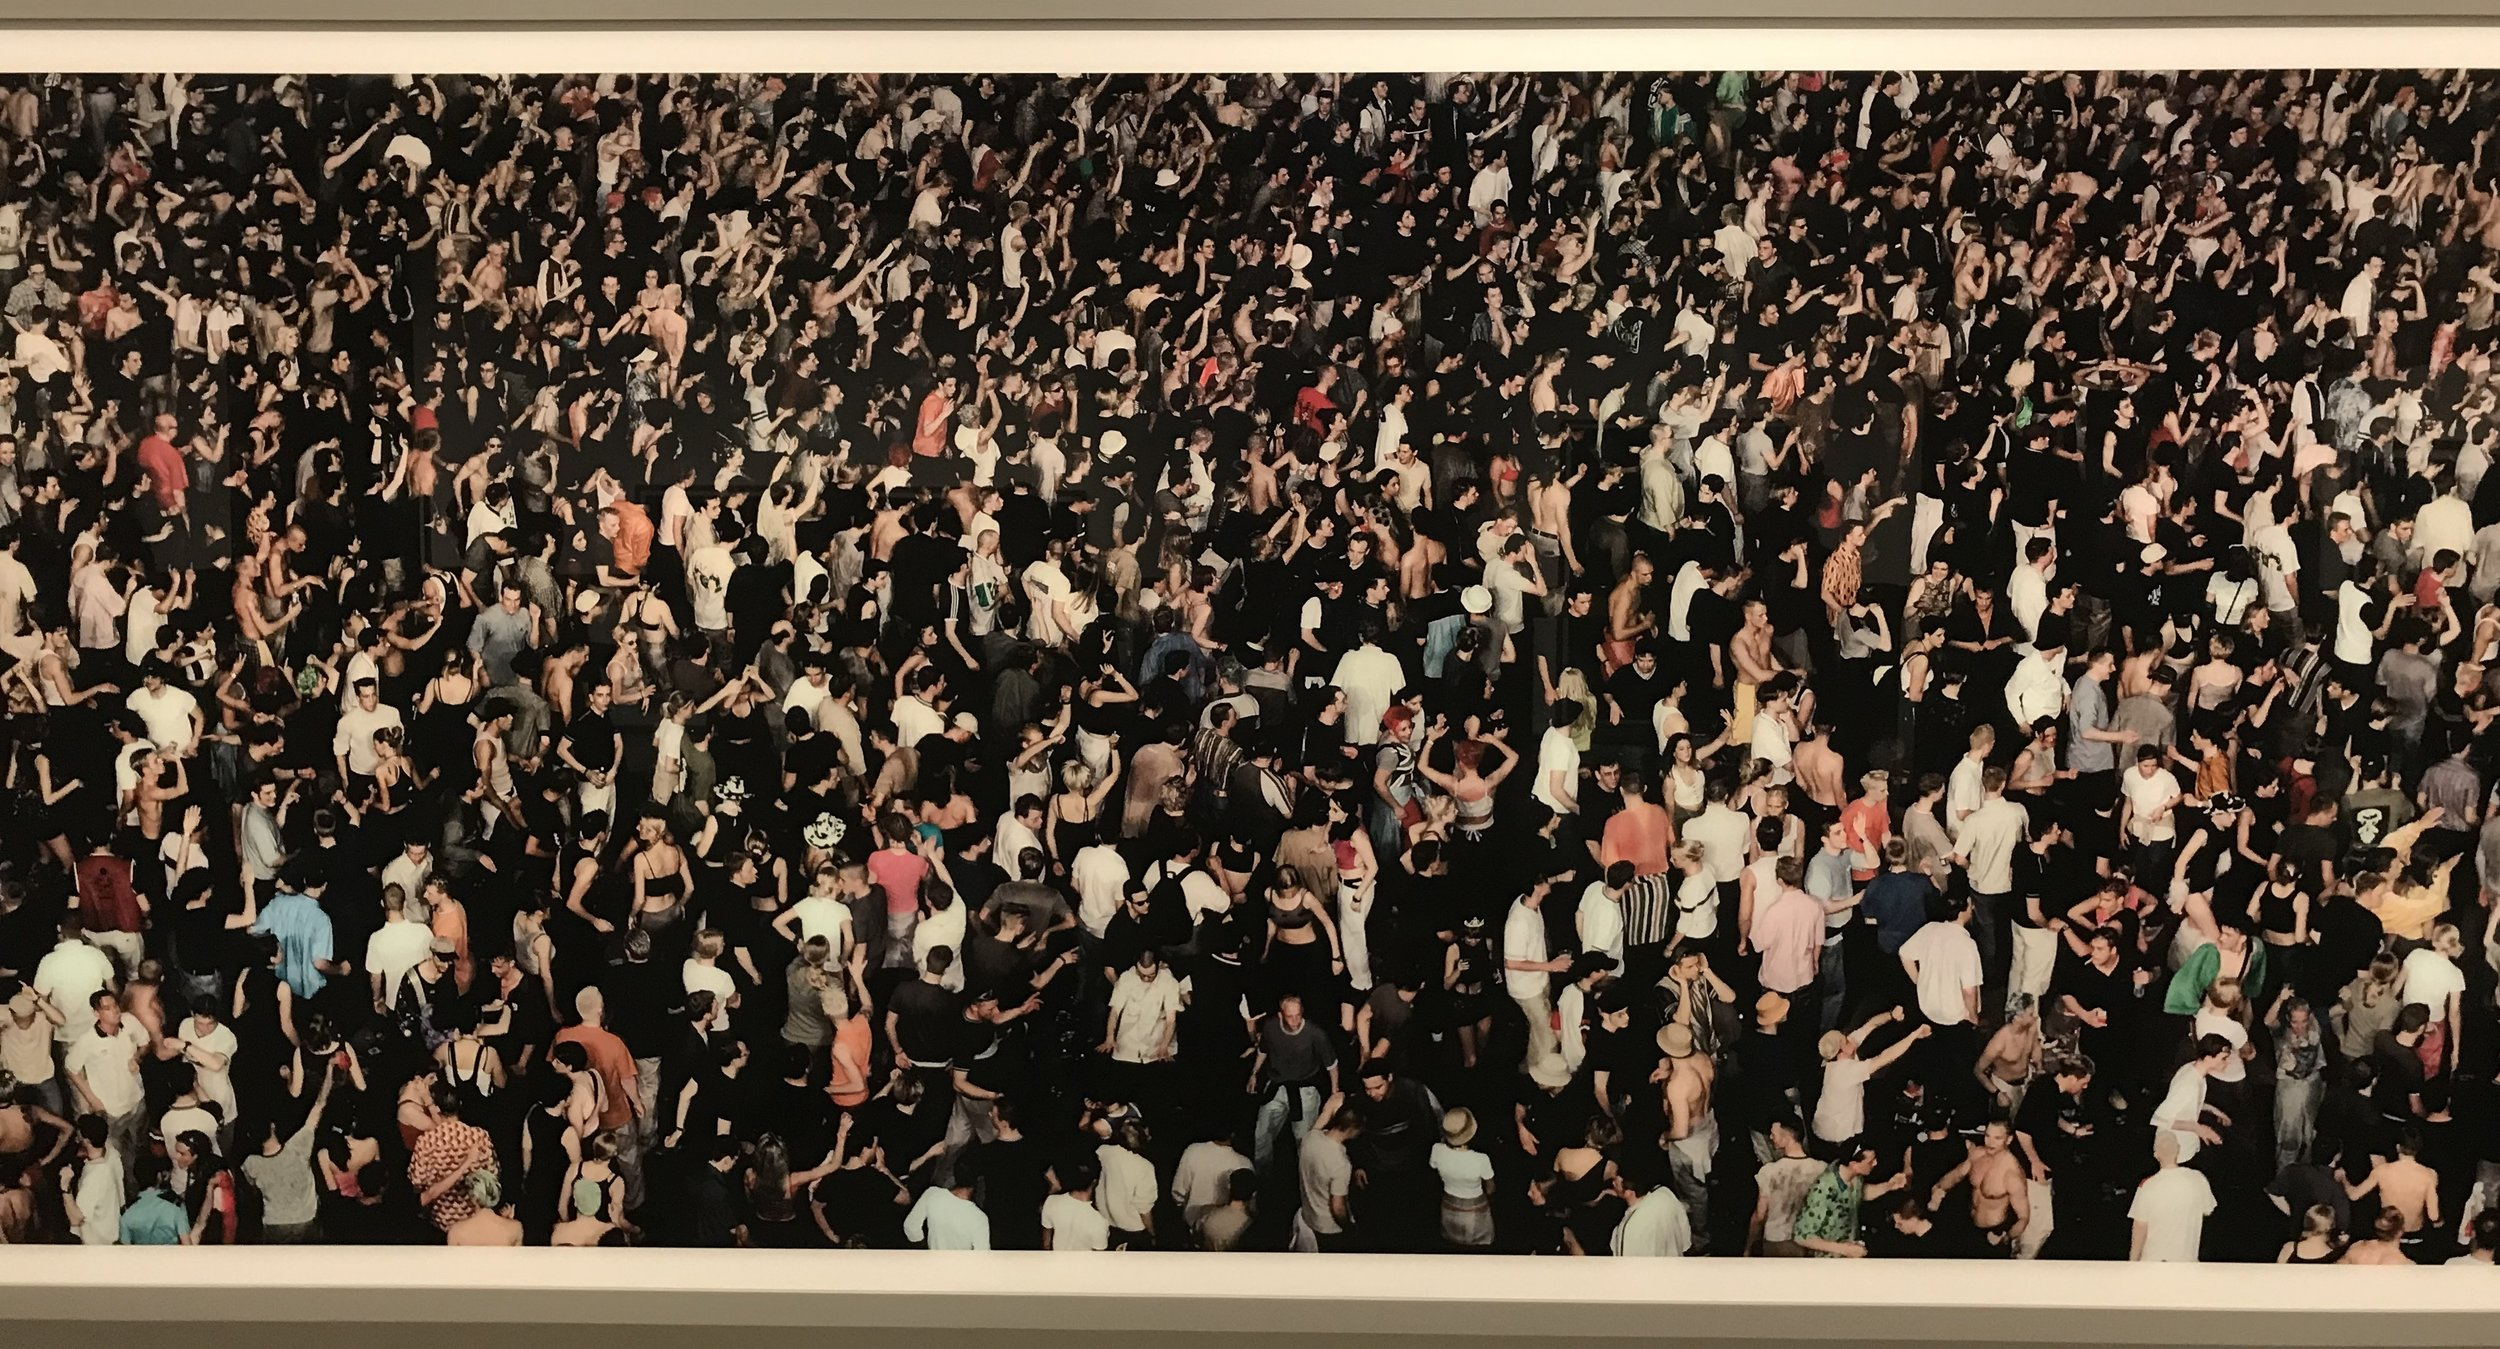 Andreas Gursky, 2000 (and 2014)